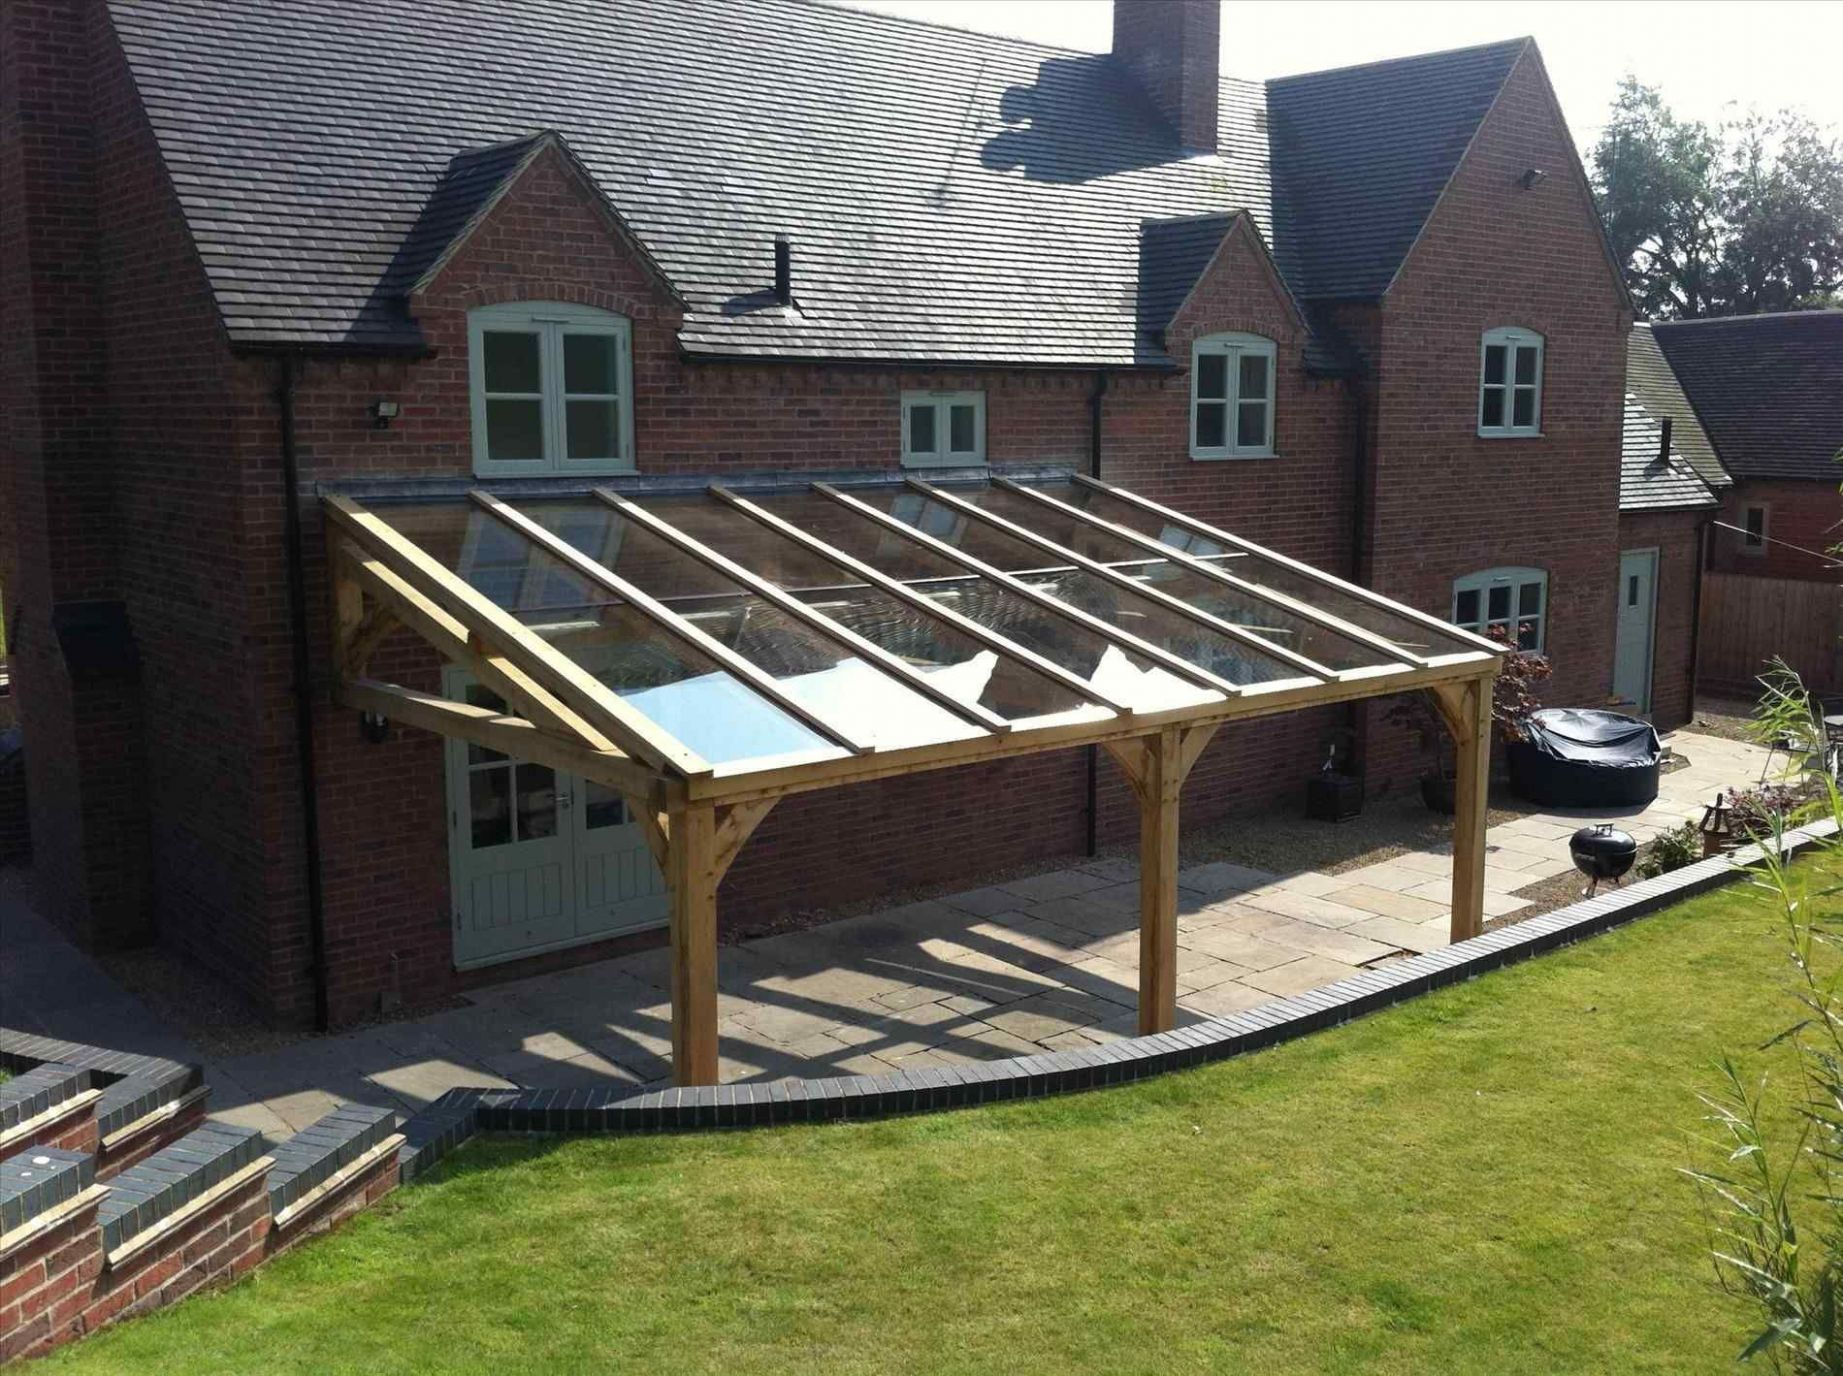 stratco outback sunroof opening roof patio . image of: deck ..